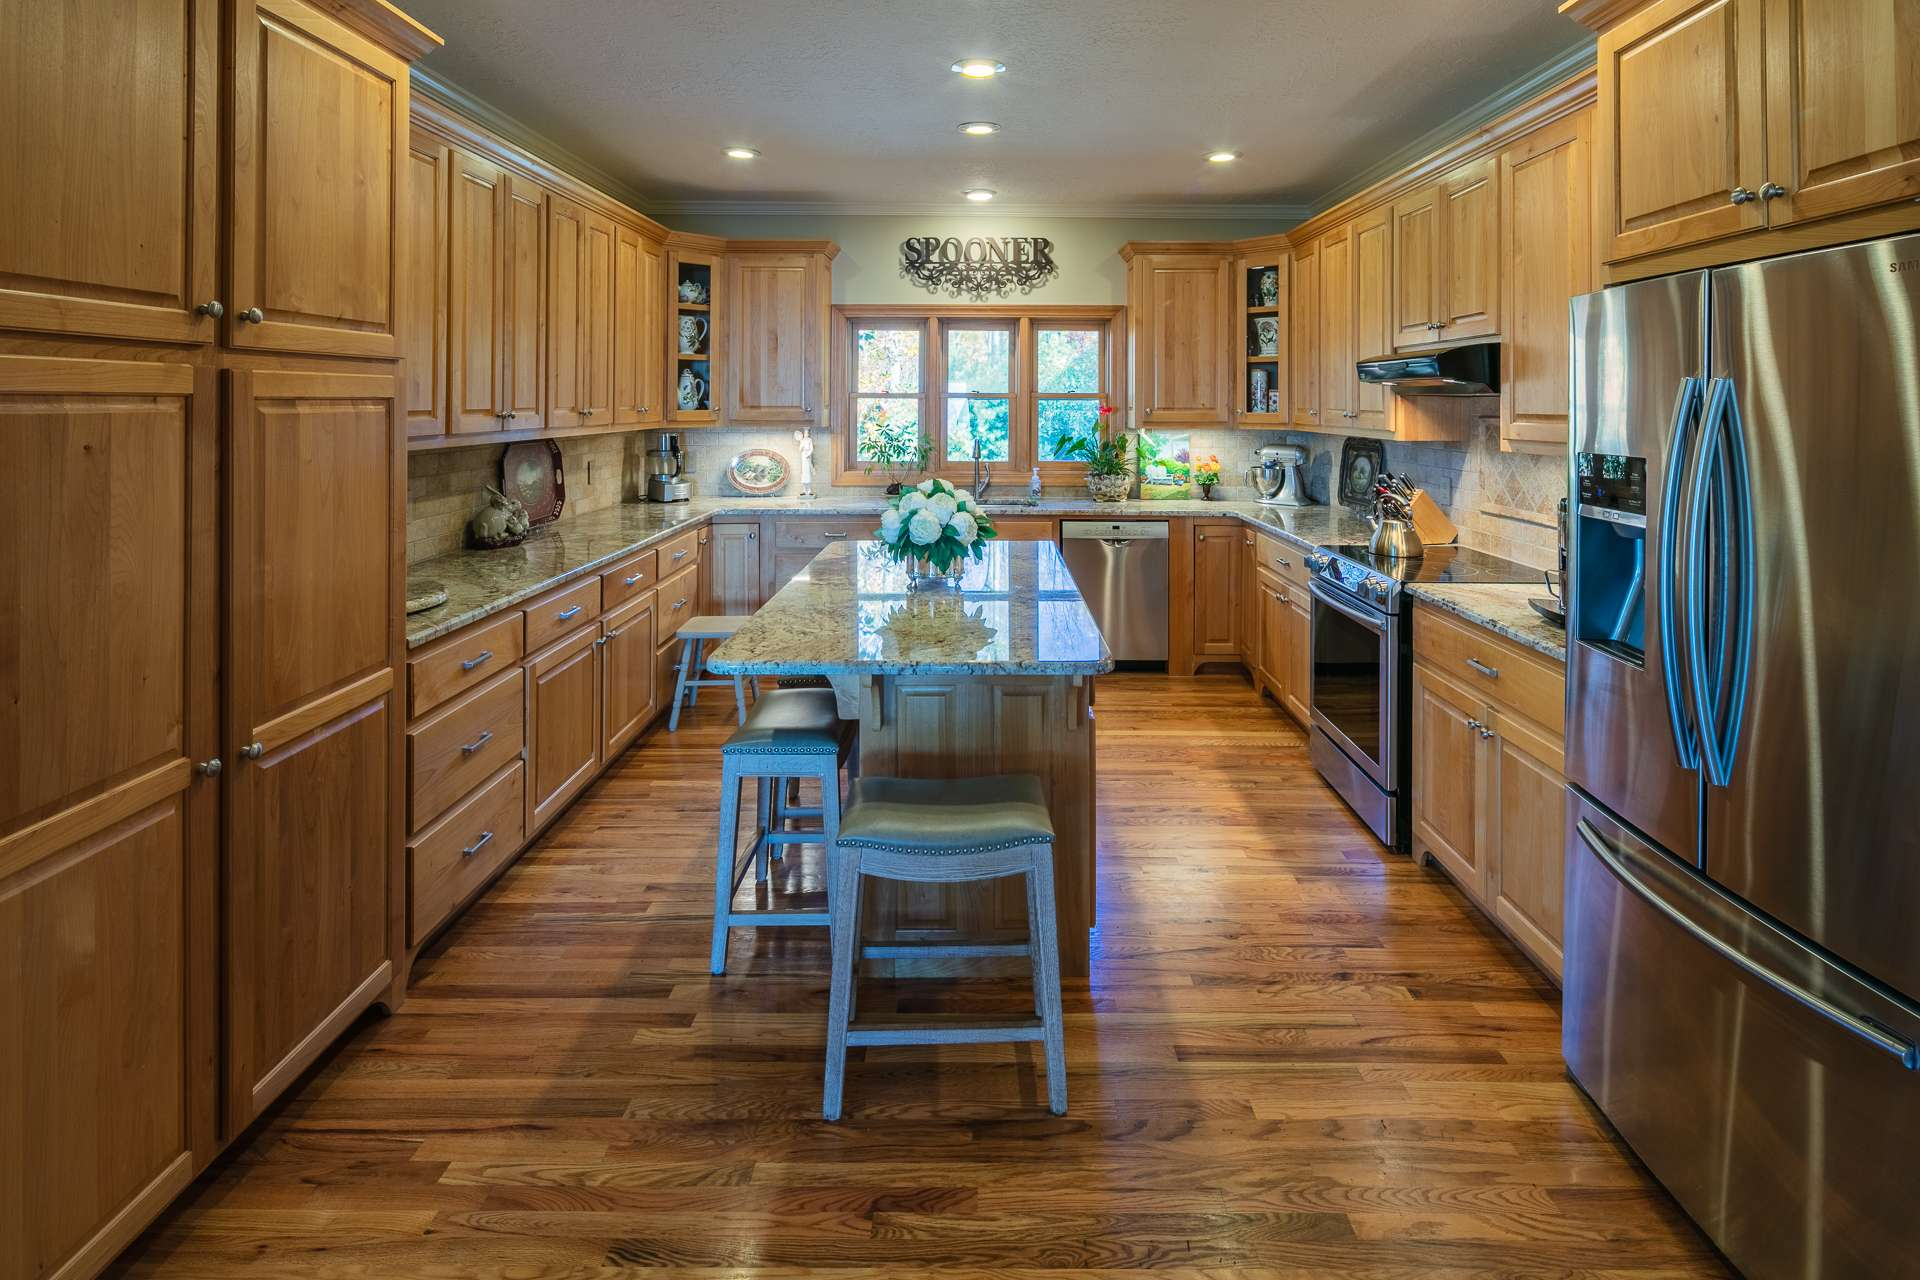 This  spacious well appointed kitchen offers custom cabinetry, granite countertops,  stainless appliances, and abundant work and storage space that includes a center island with bar seating.